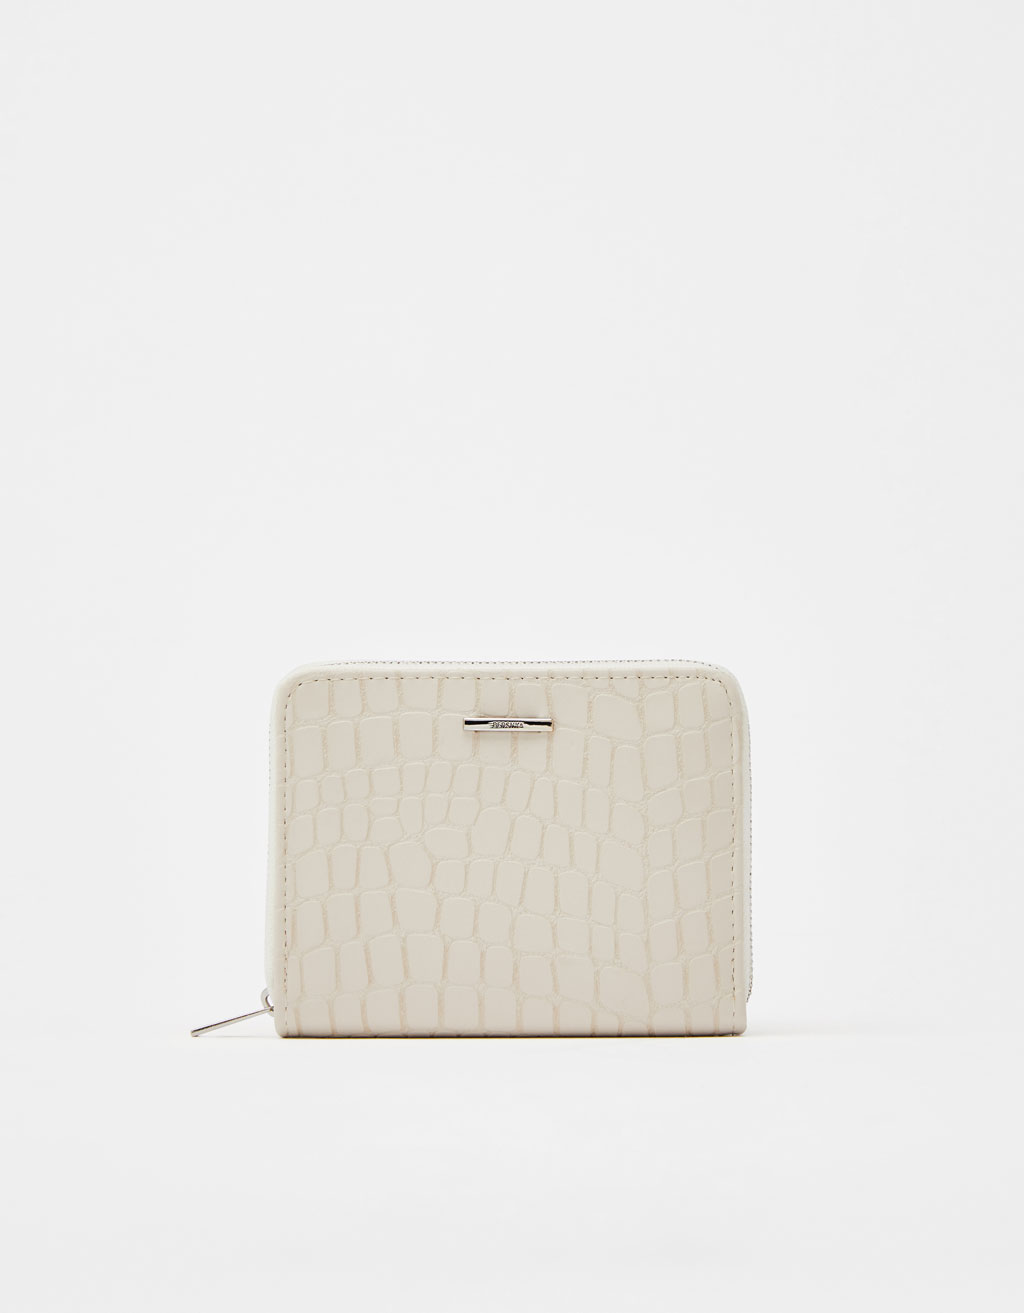 Square purse with detailing